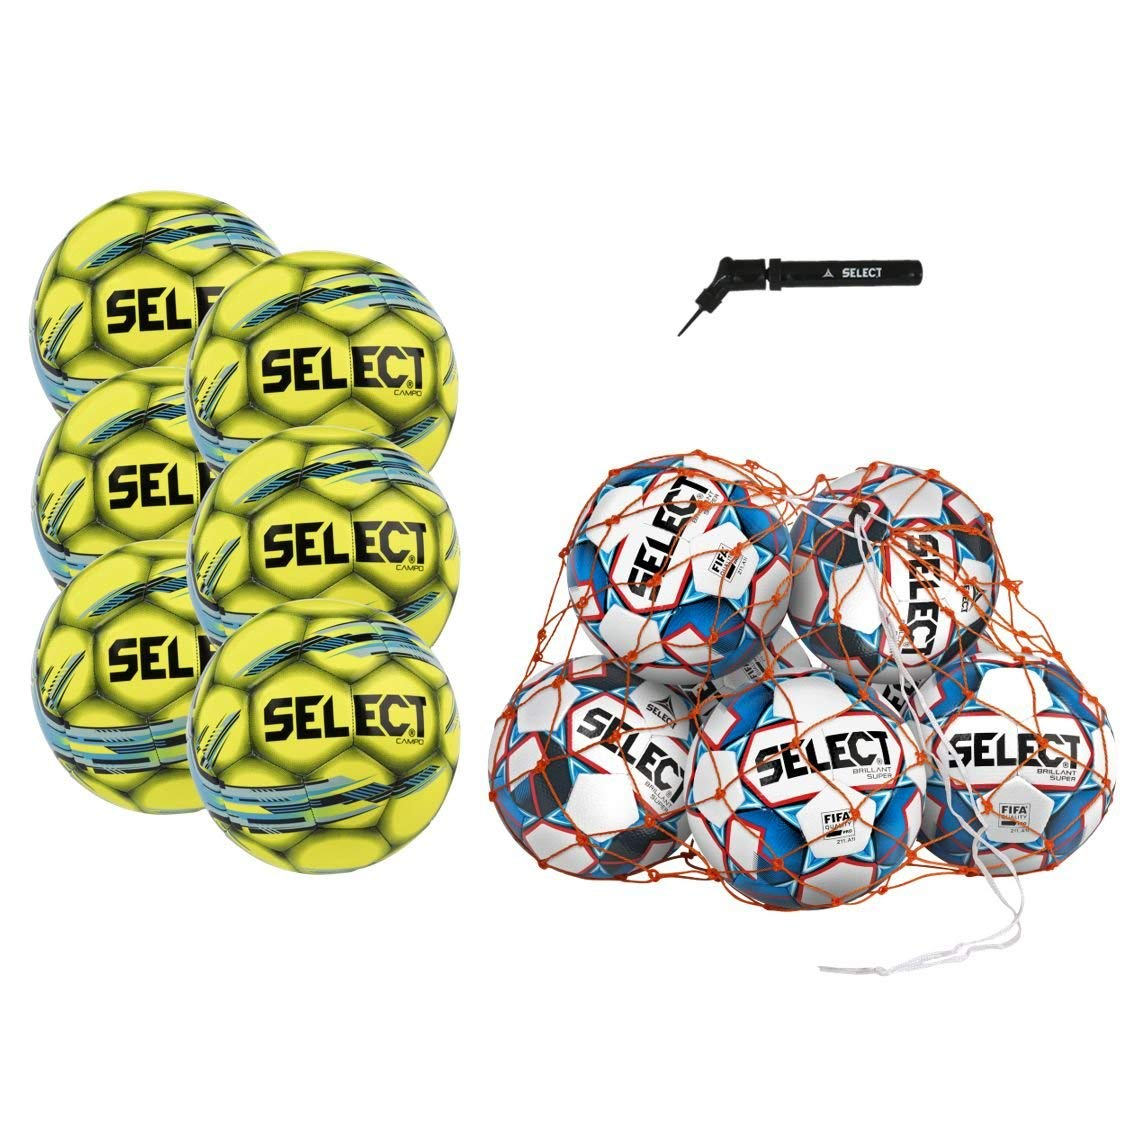 Select Campo Soccer Ball Package - Pack of 6 Soccer Balls Ball Net Hand Pump, Yellow, Size 5